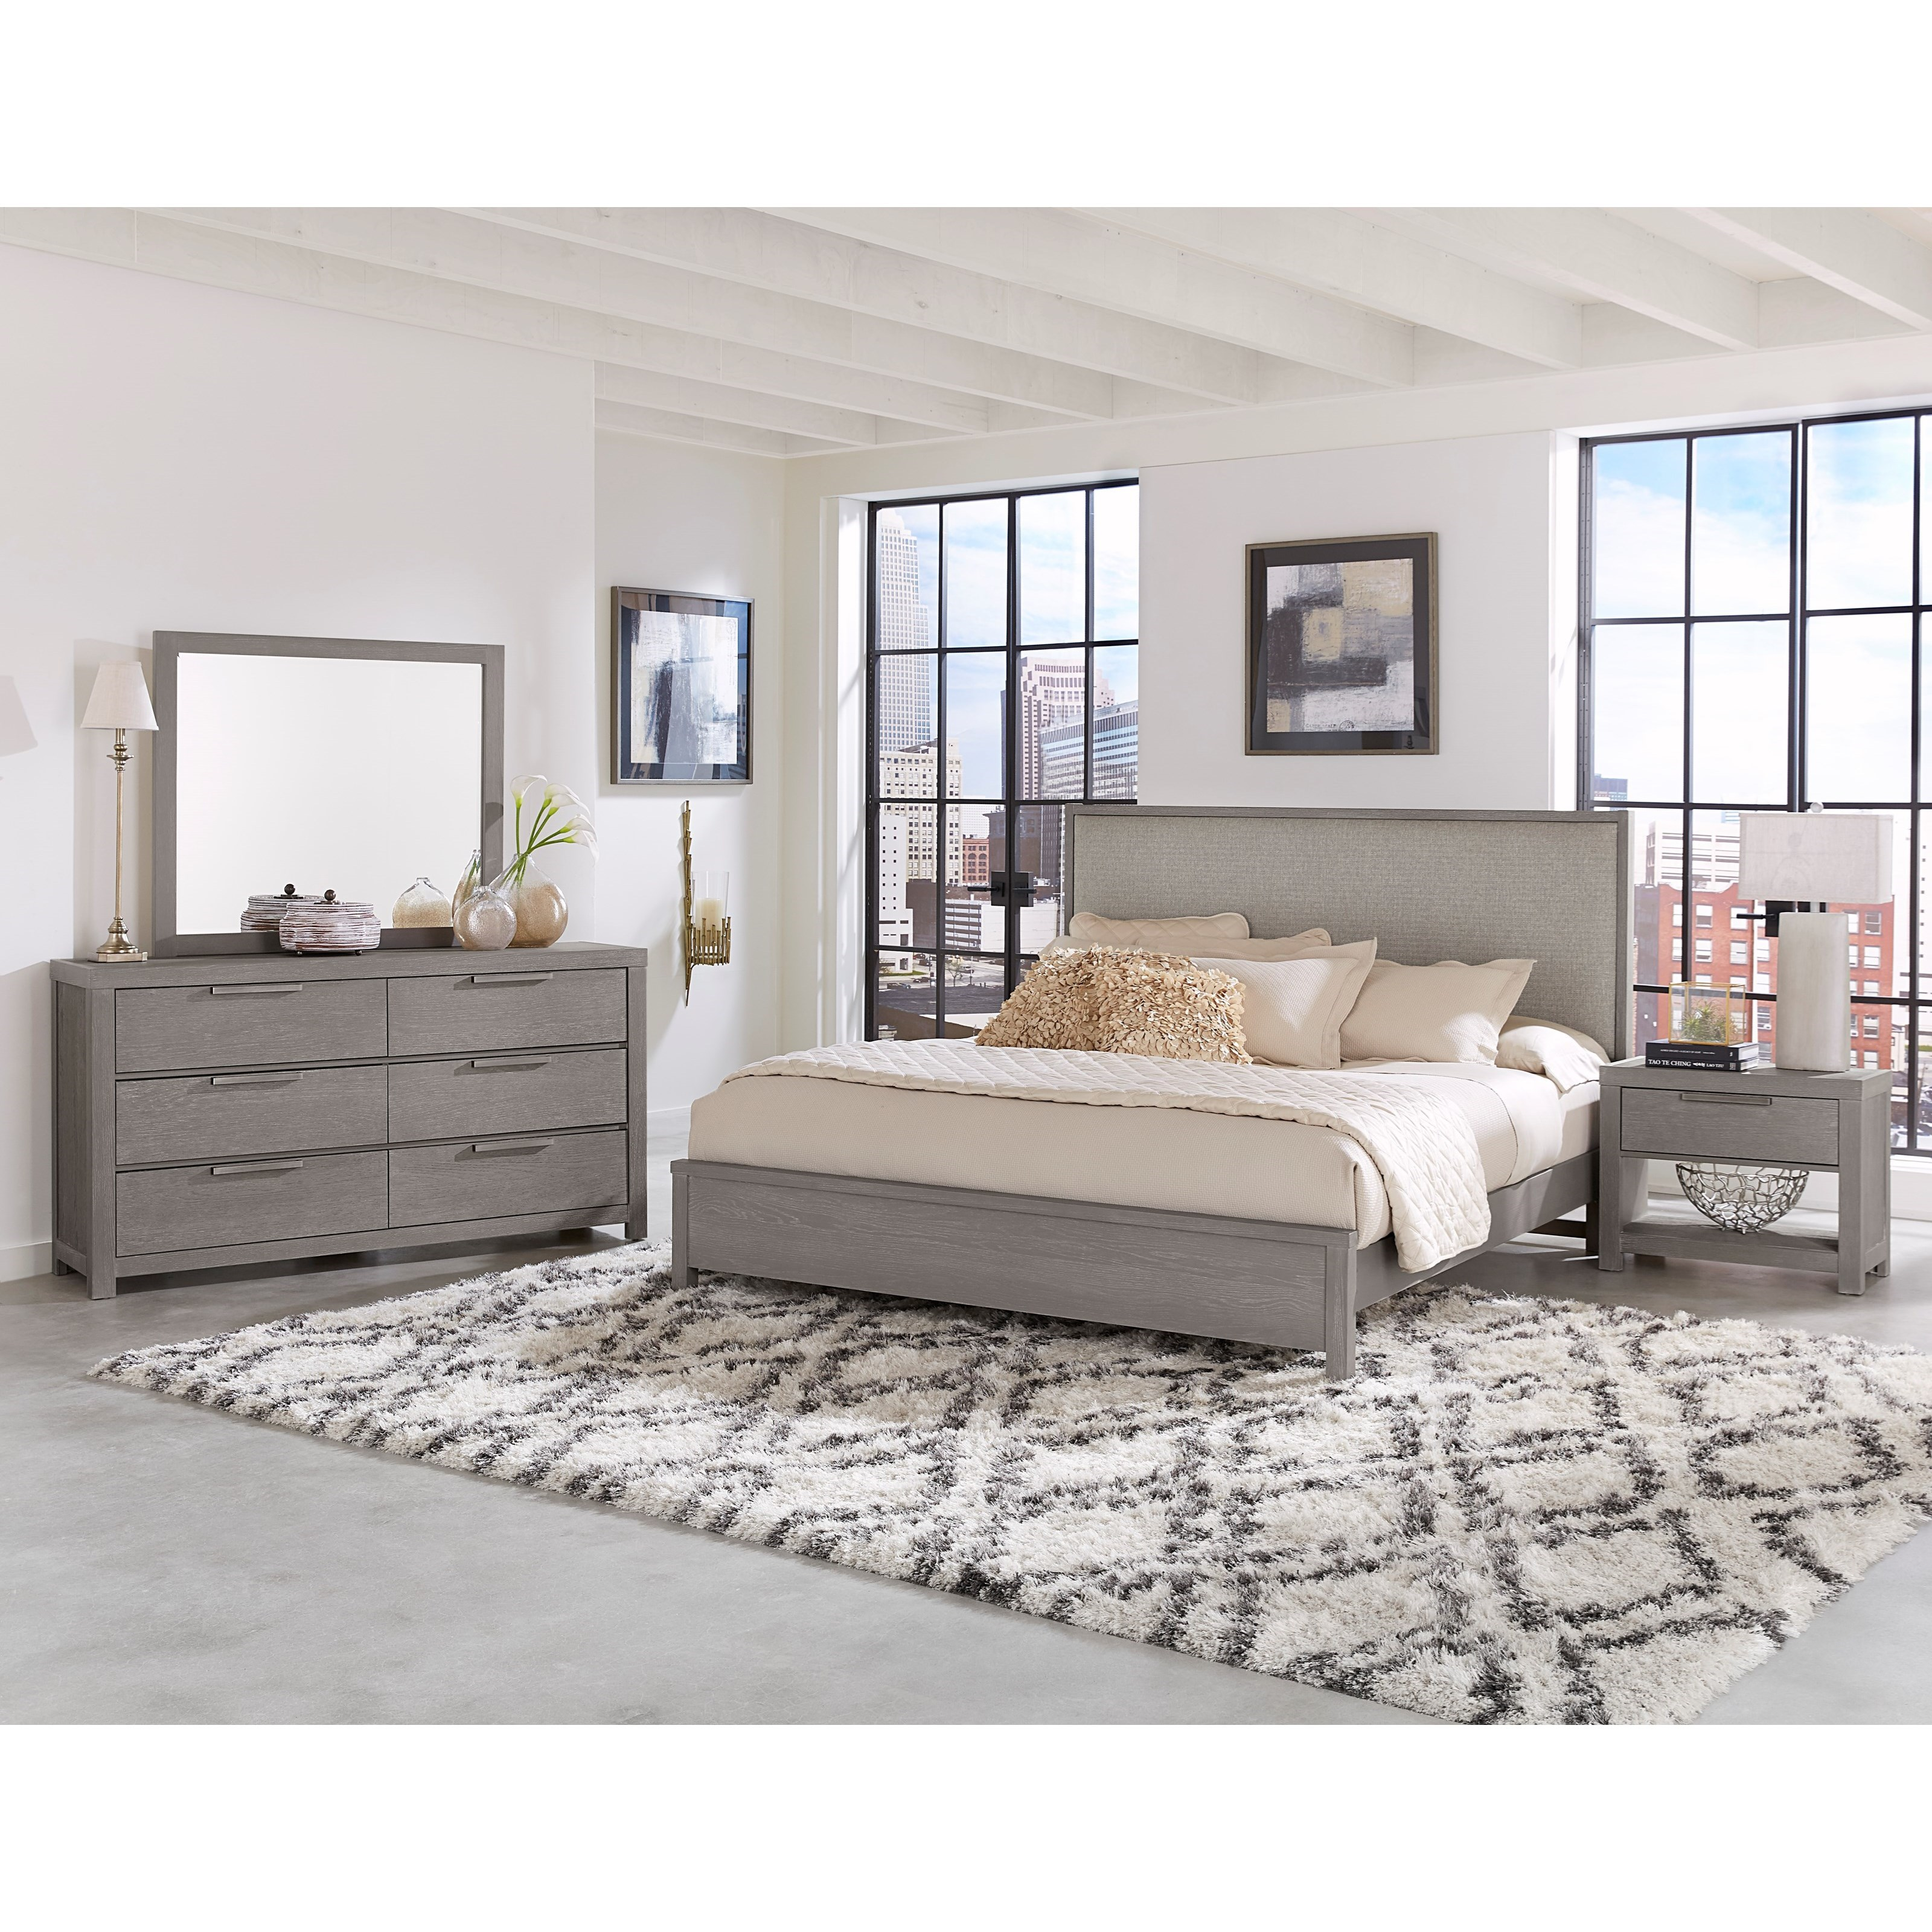 bedroom bassett transitions vaughan product group oak driftwood furniture collection